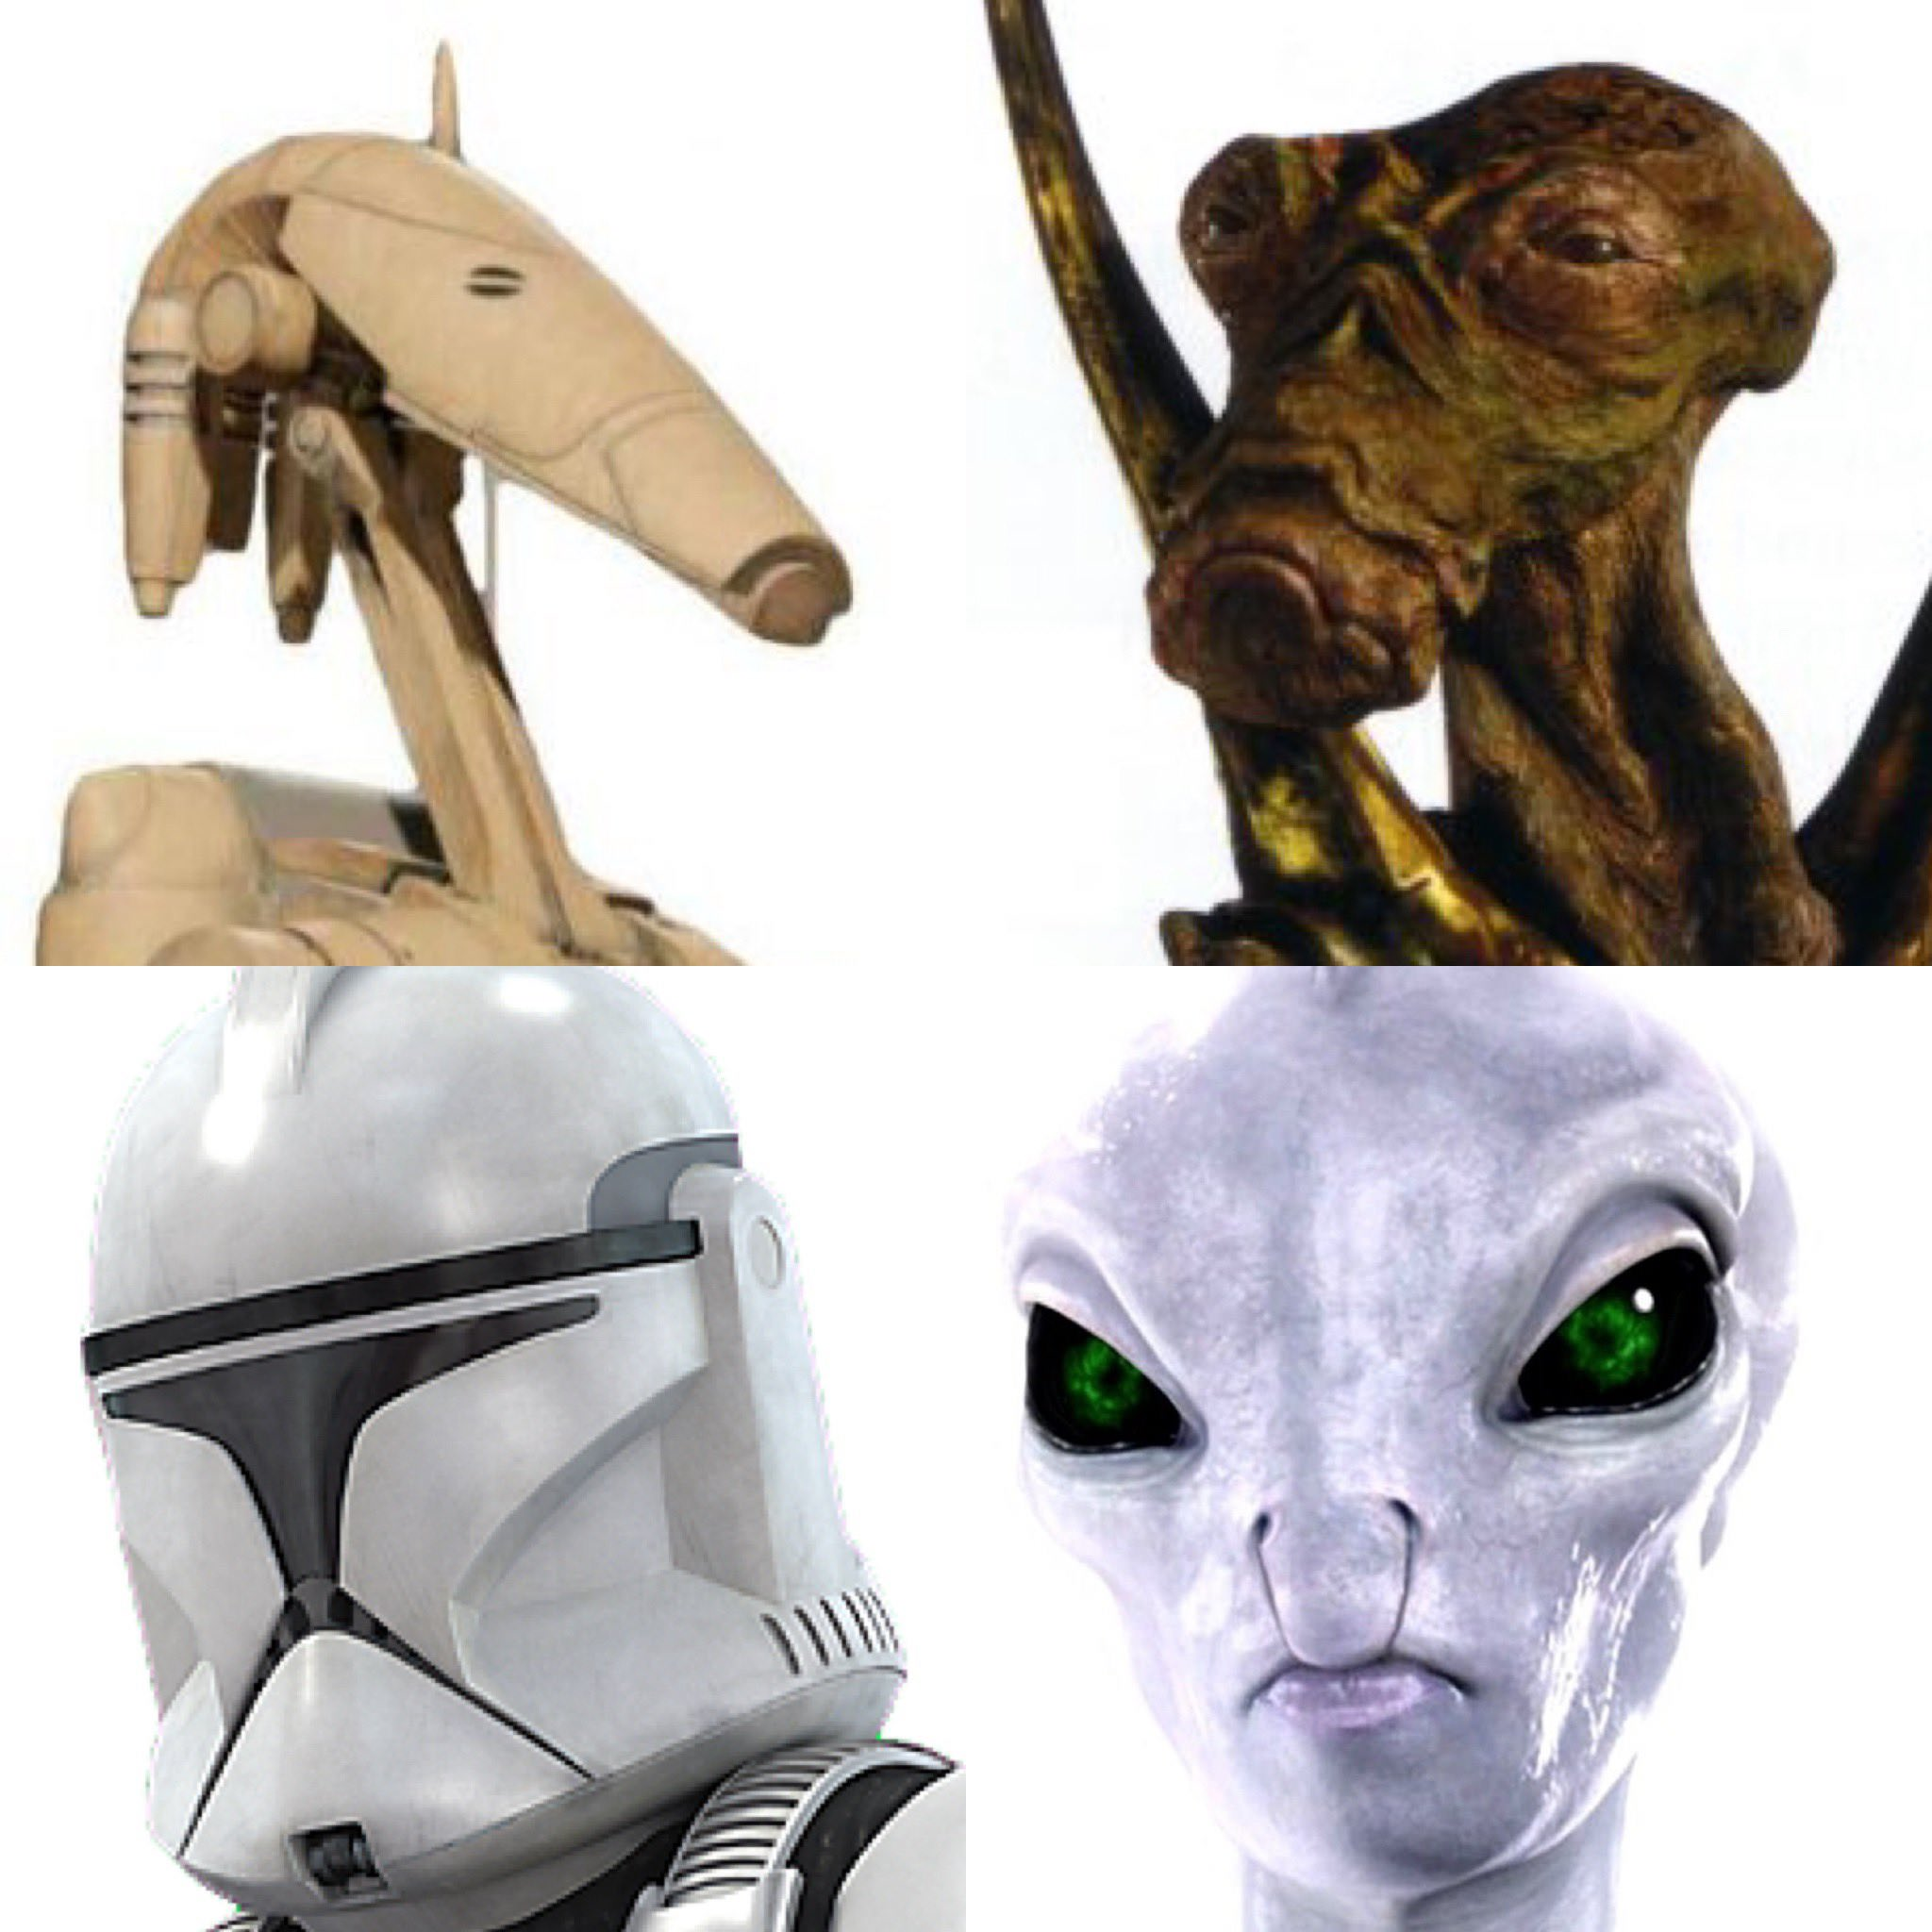 The soldiers were made in their creators likeness